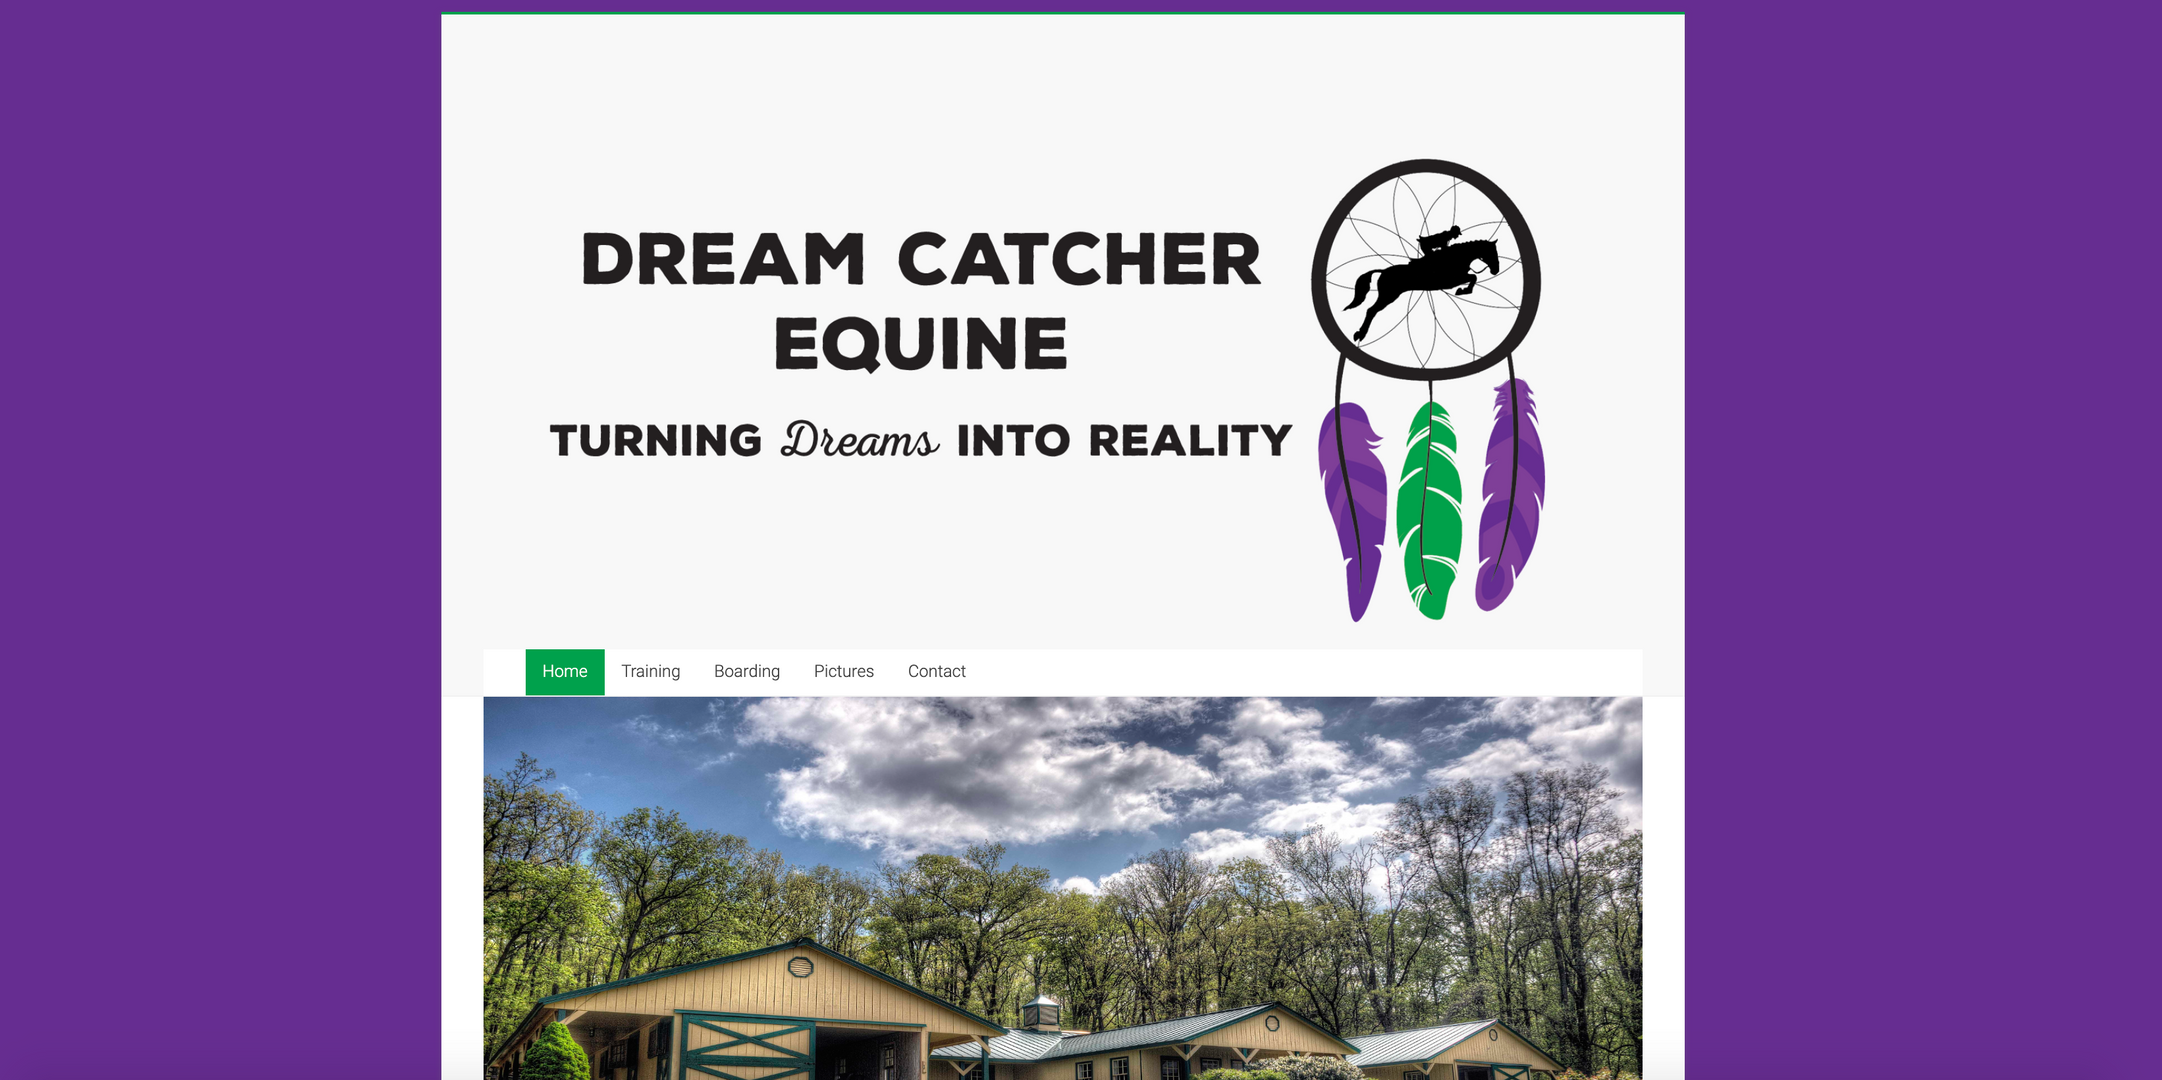 Dream Catcher Equine